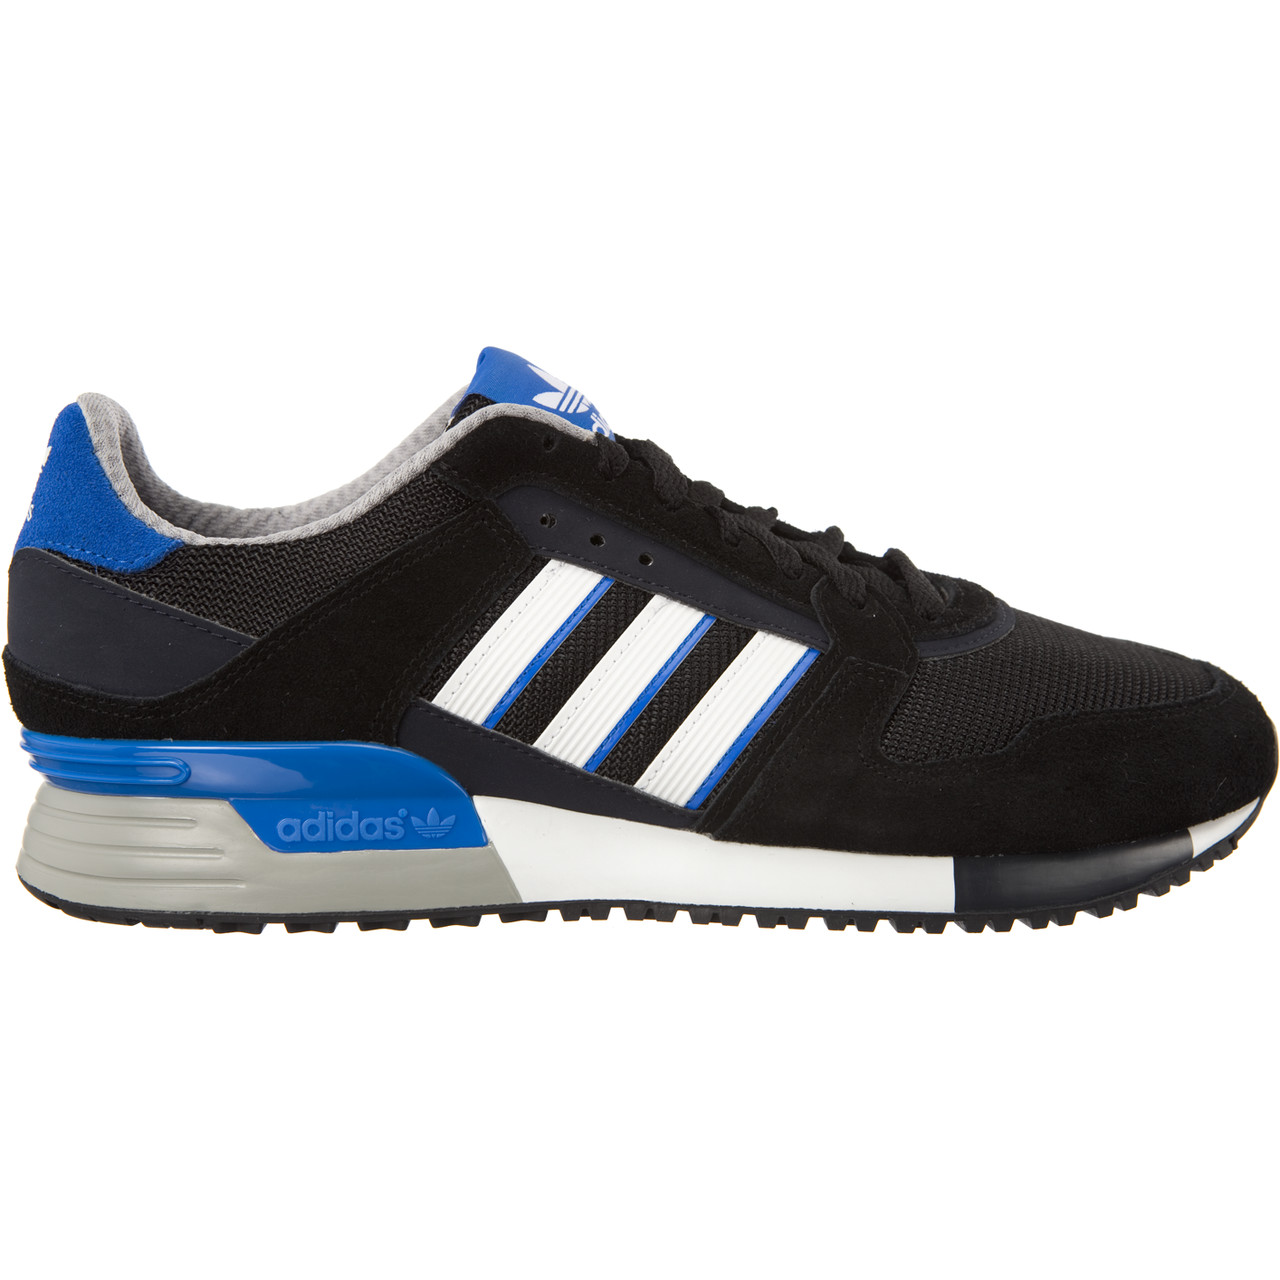 taille 40 9a766 f32be promo code for buty adidas zx 650 0bf1e b5bfa